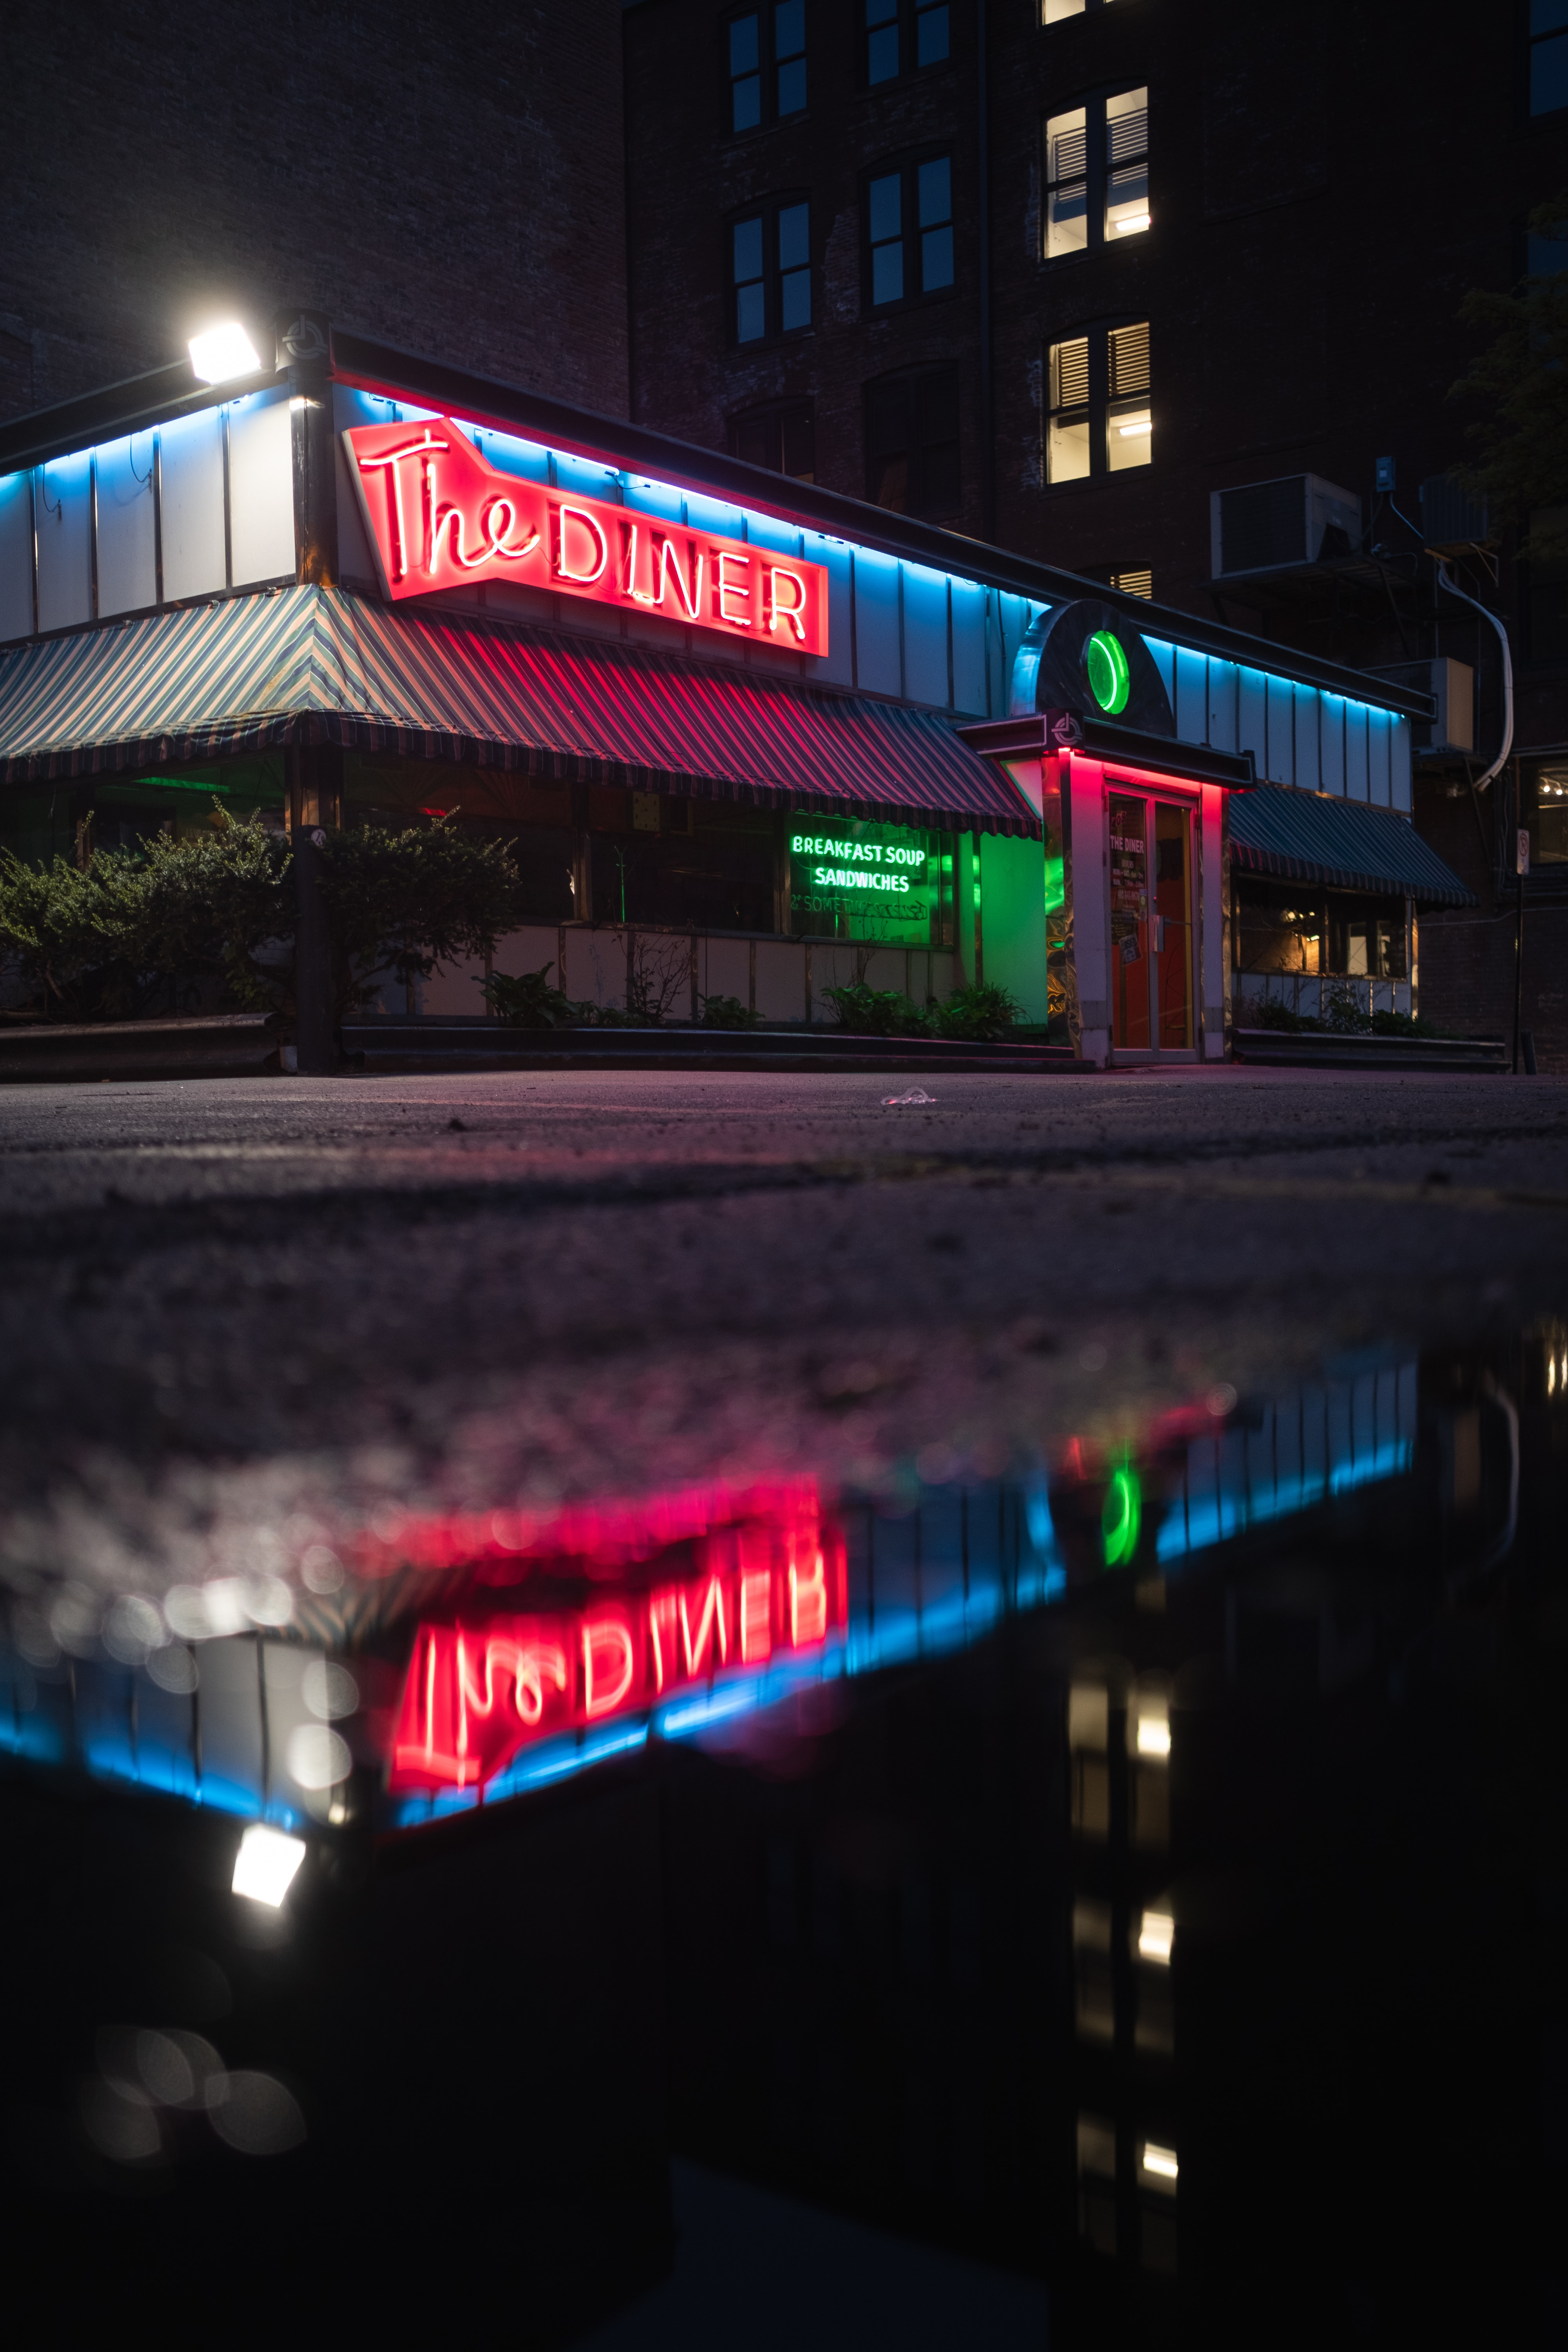 The Diner lighted signage